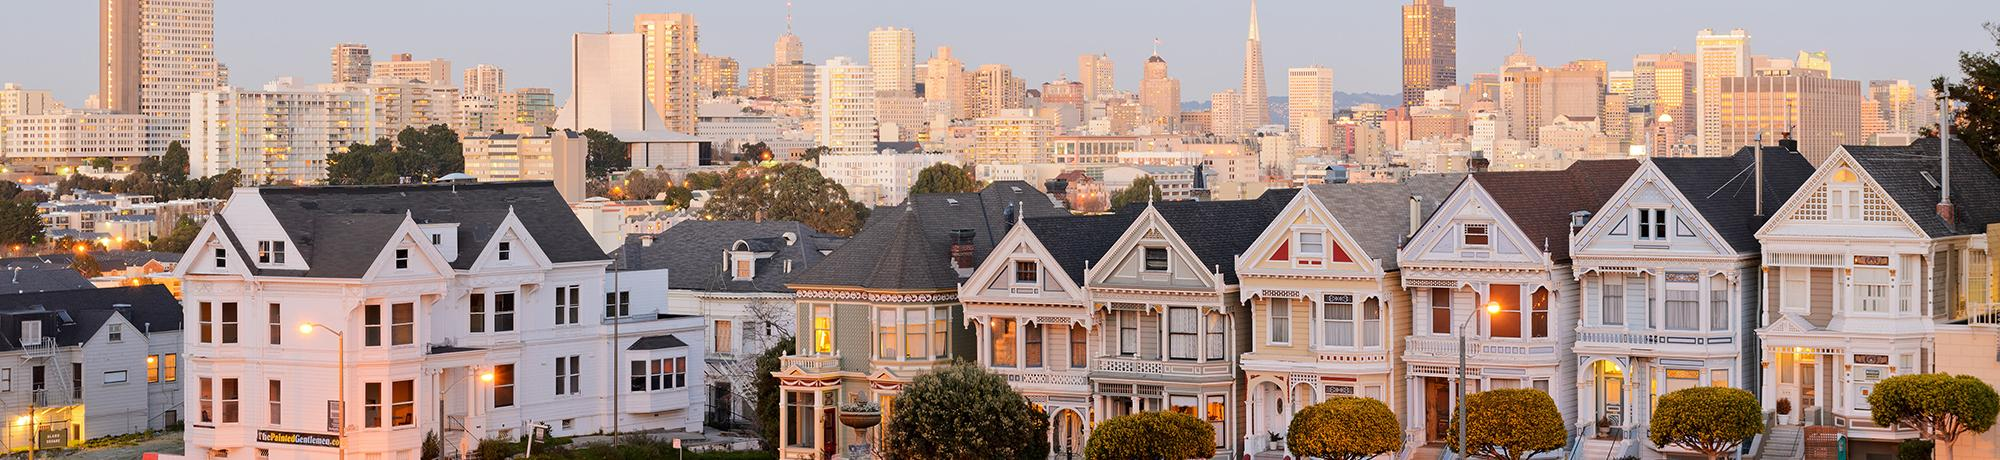 view of row houses in san francisco. image credit: time.com